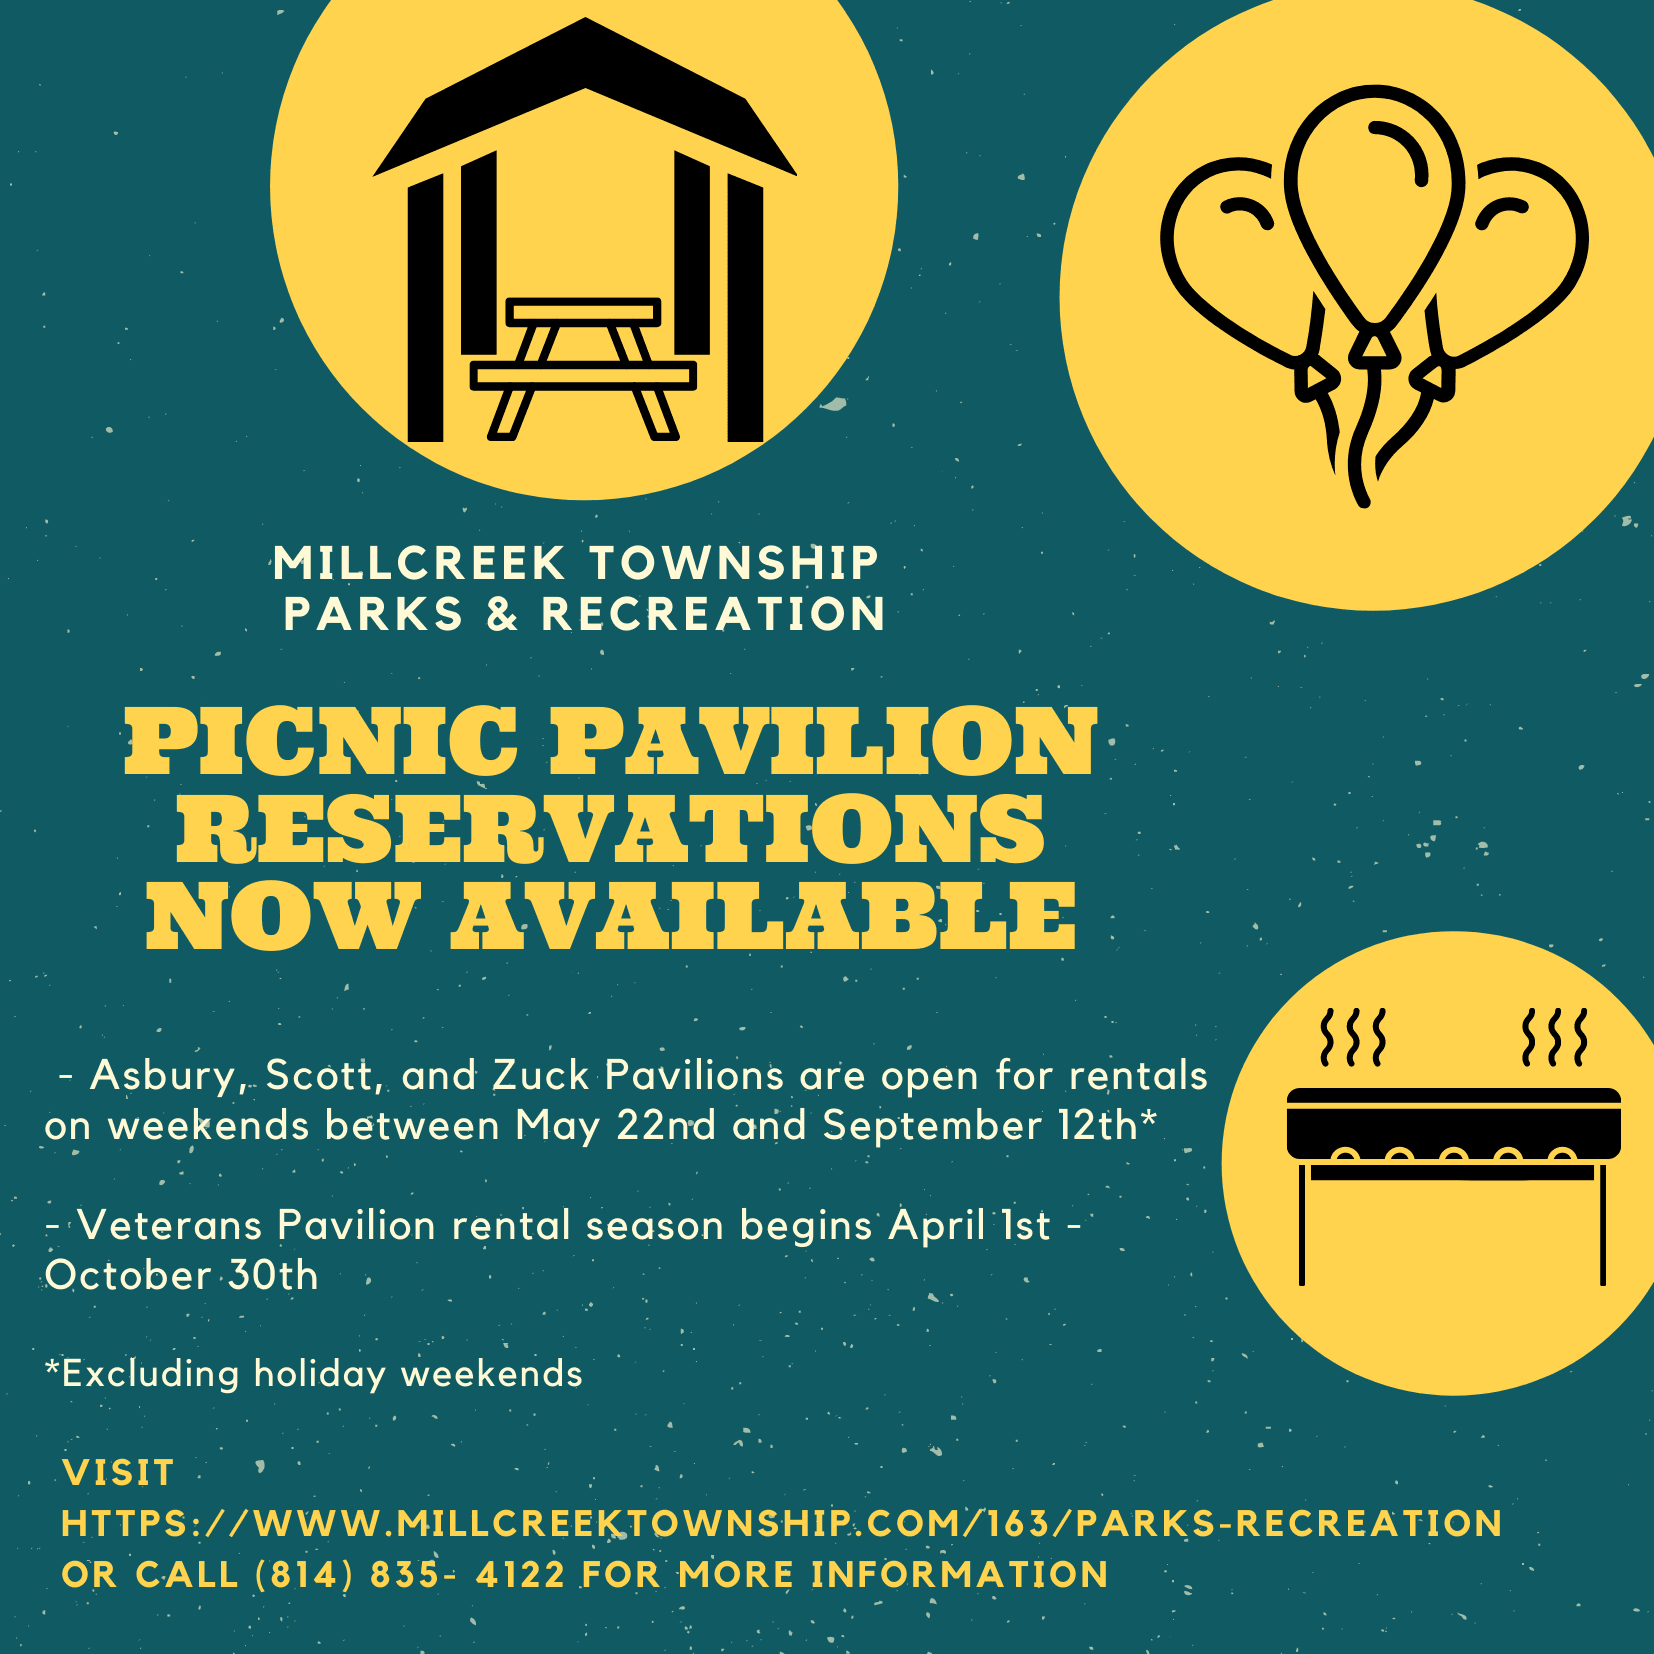 Pavilion Reservations Available